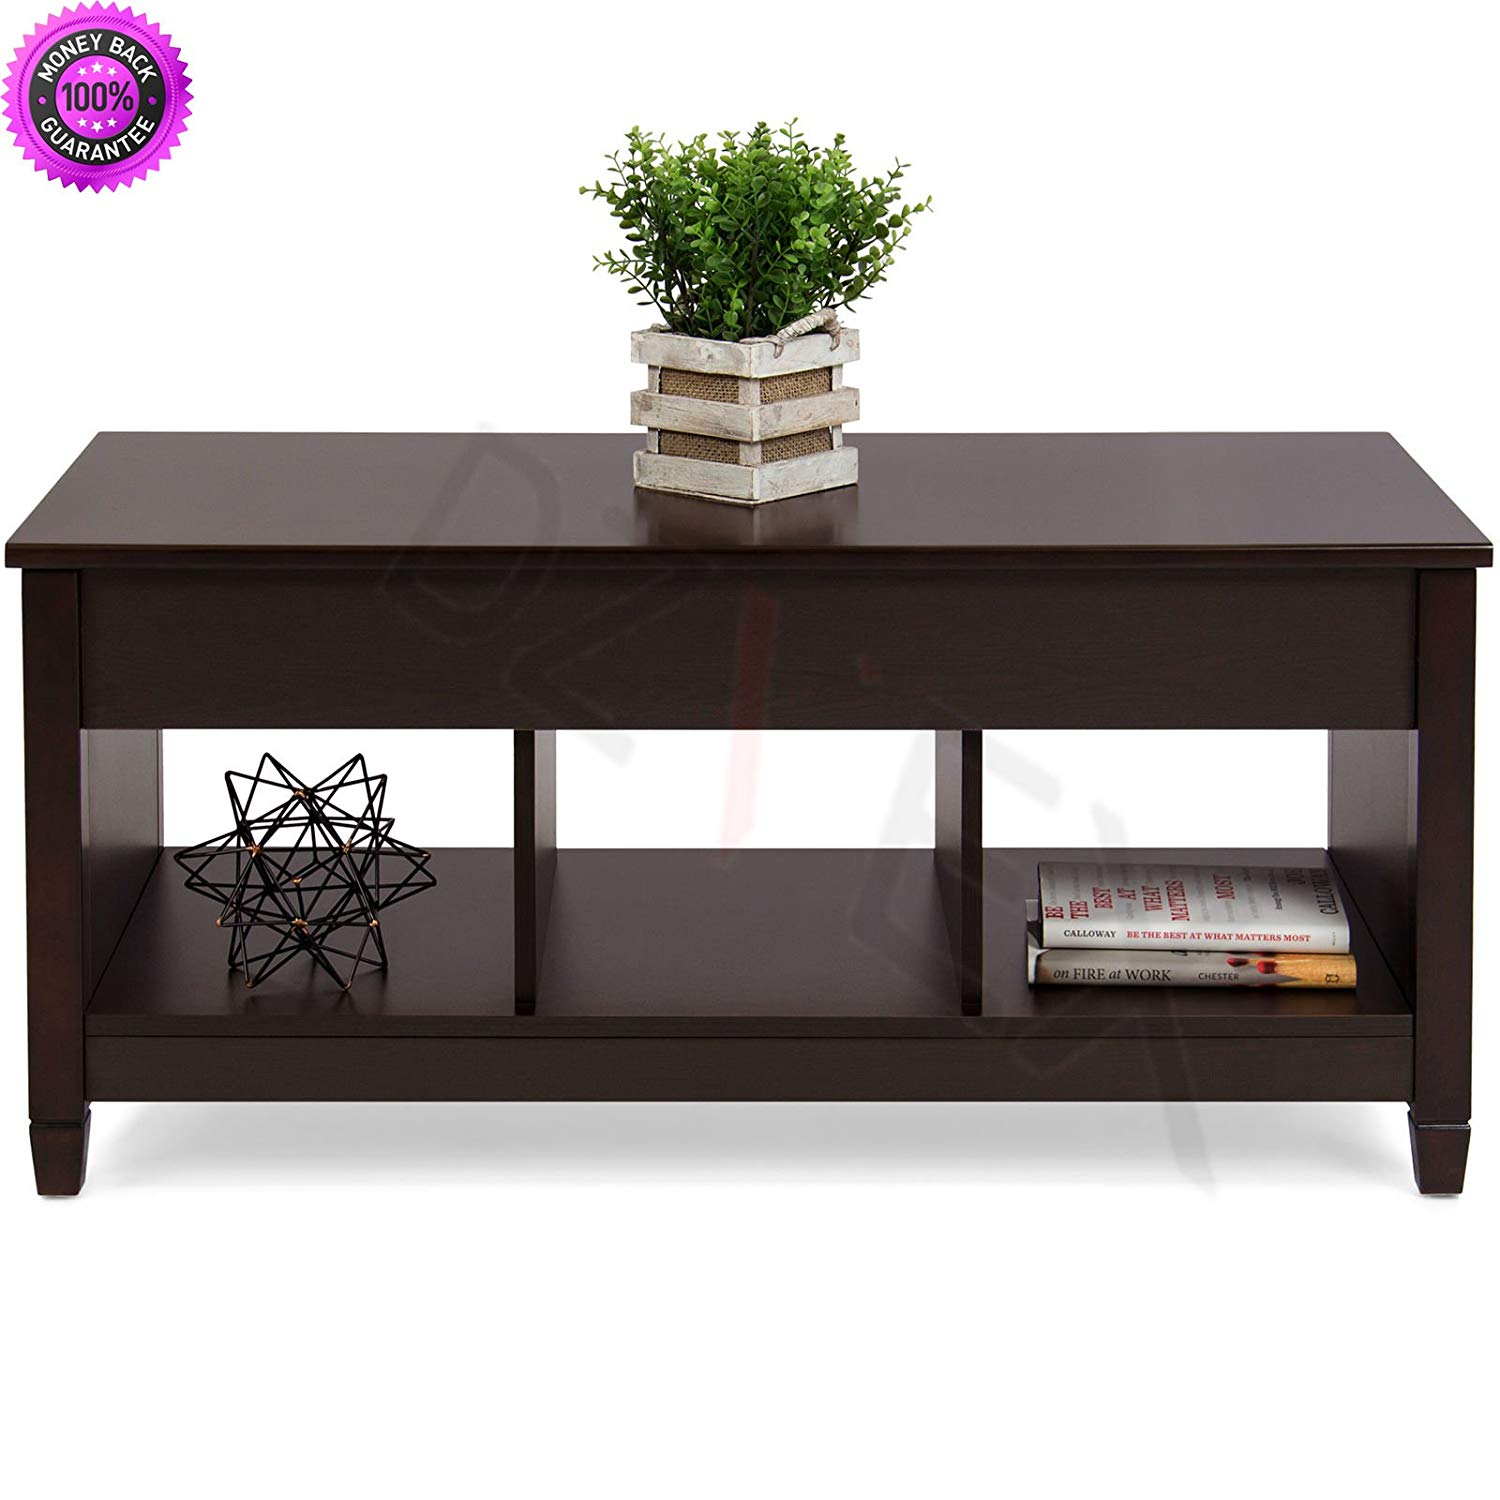 accent tables small find line furniture get quotations dzvex home lift top coffee table hidden compartment and kitchen folding wine holder wood bedding storage ikea kallax boxes